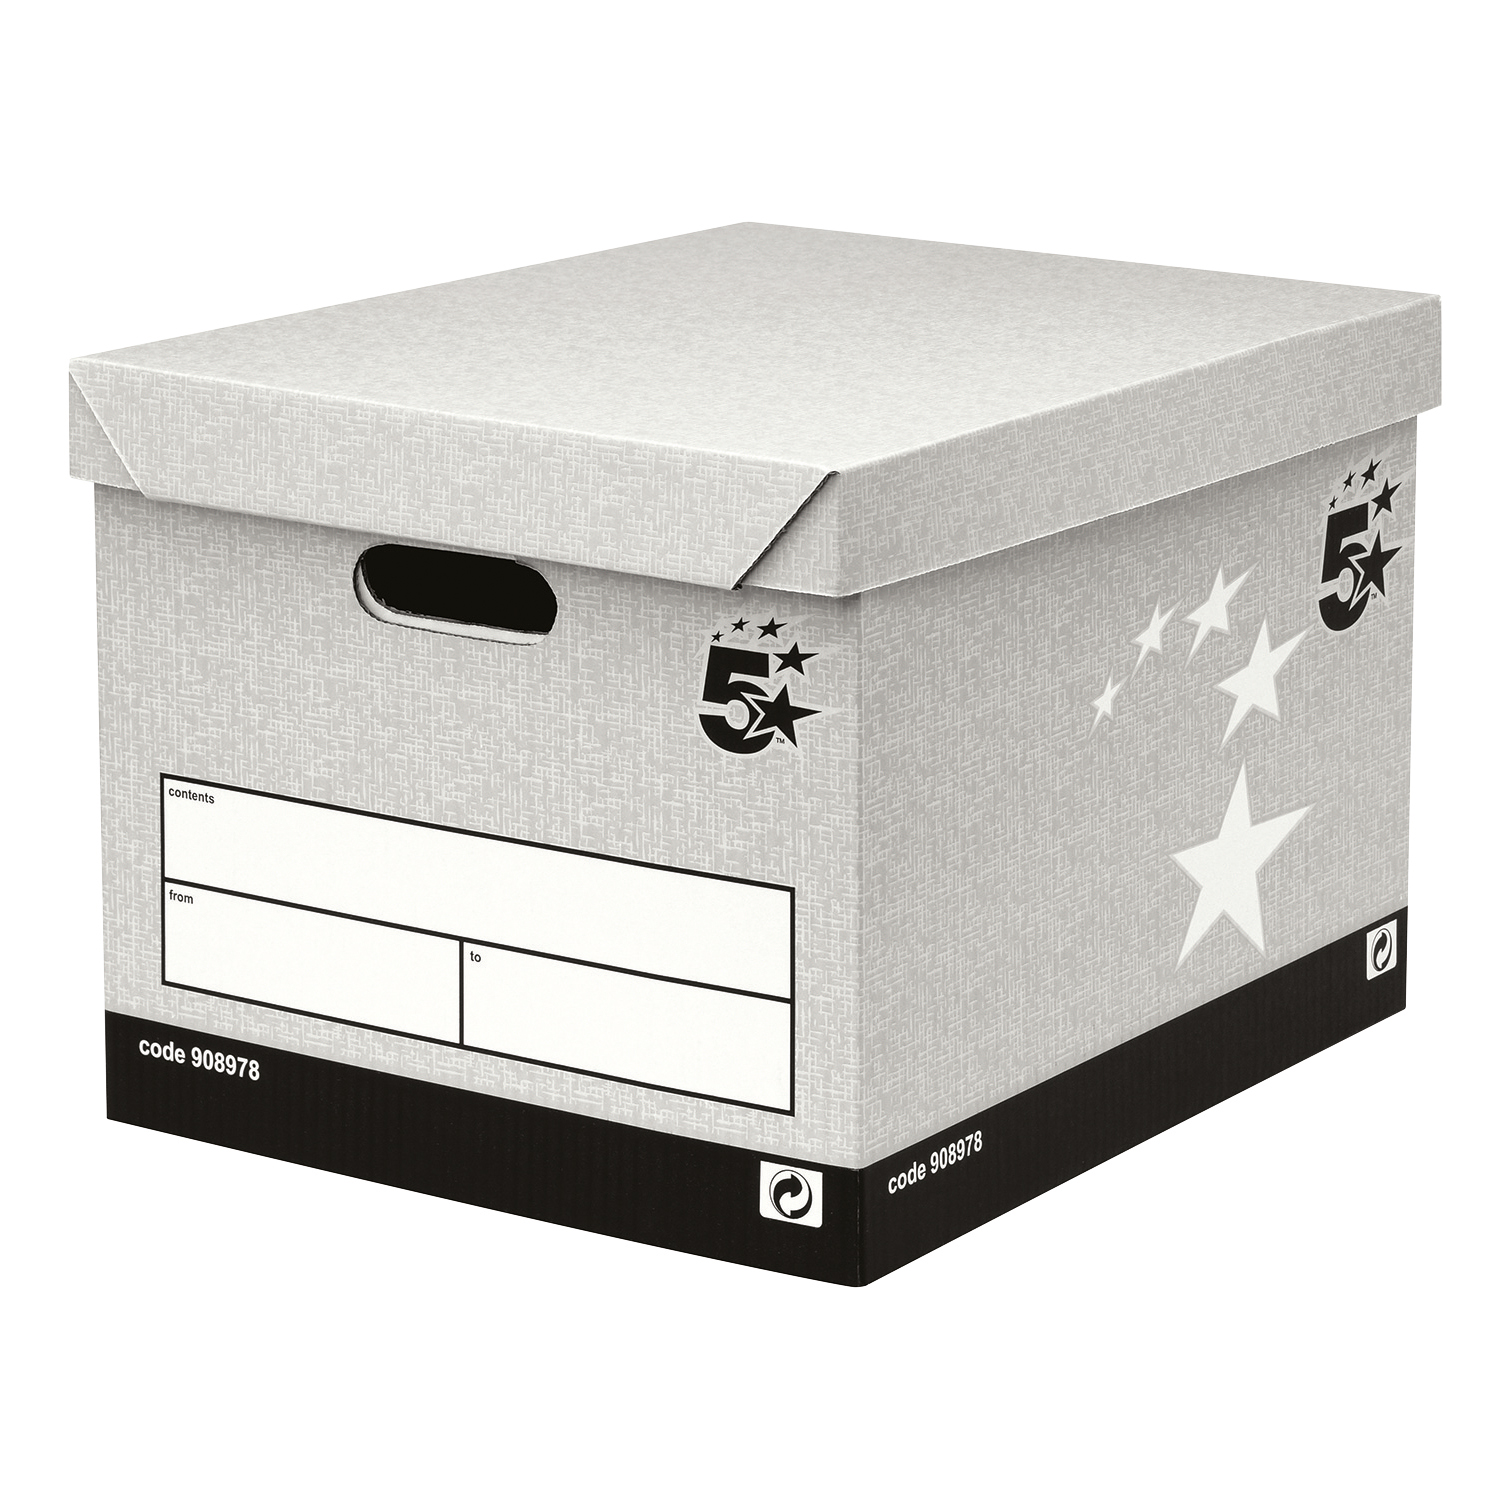 Storage Boxes 5 Star Facilities FSC Storage Box & Lid Self-Assembly W336xD391xH285mm Grey Pack 10